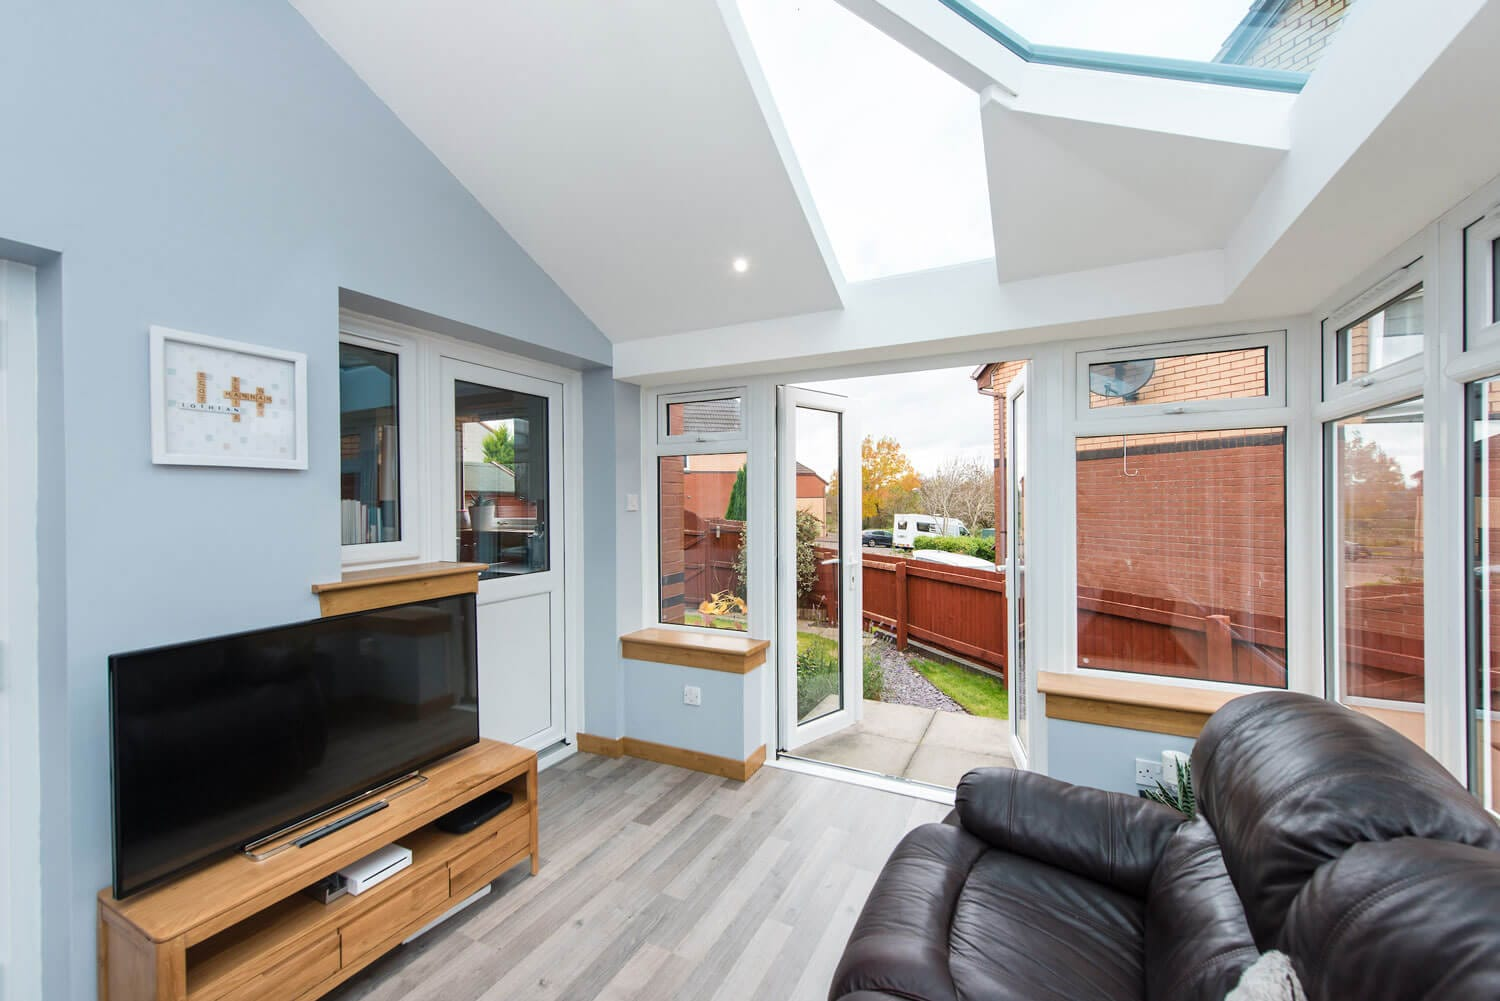 Find the Perfect Garden Room Today!